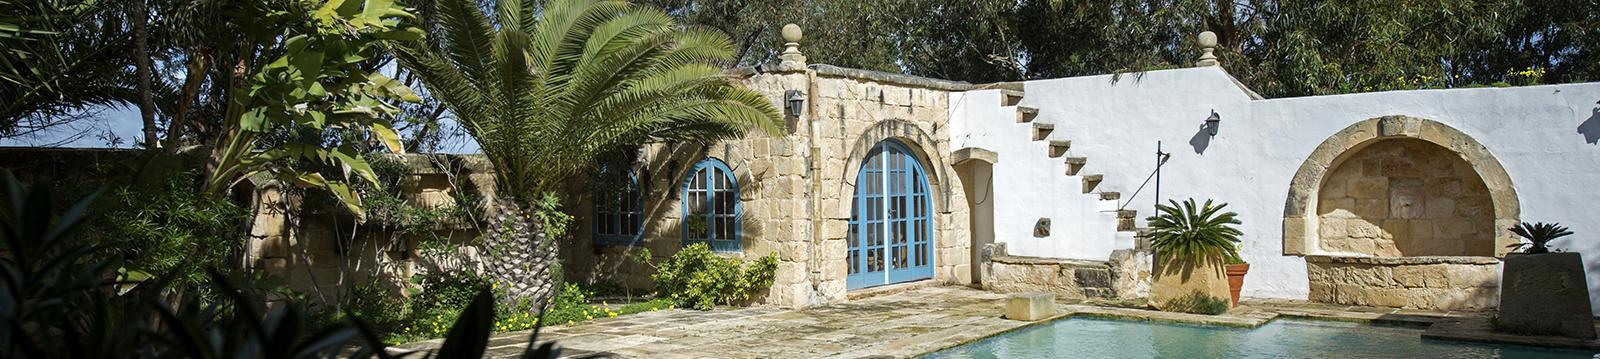 qrendi farmhouse 652919